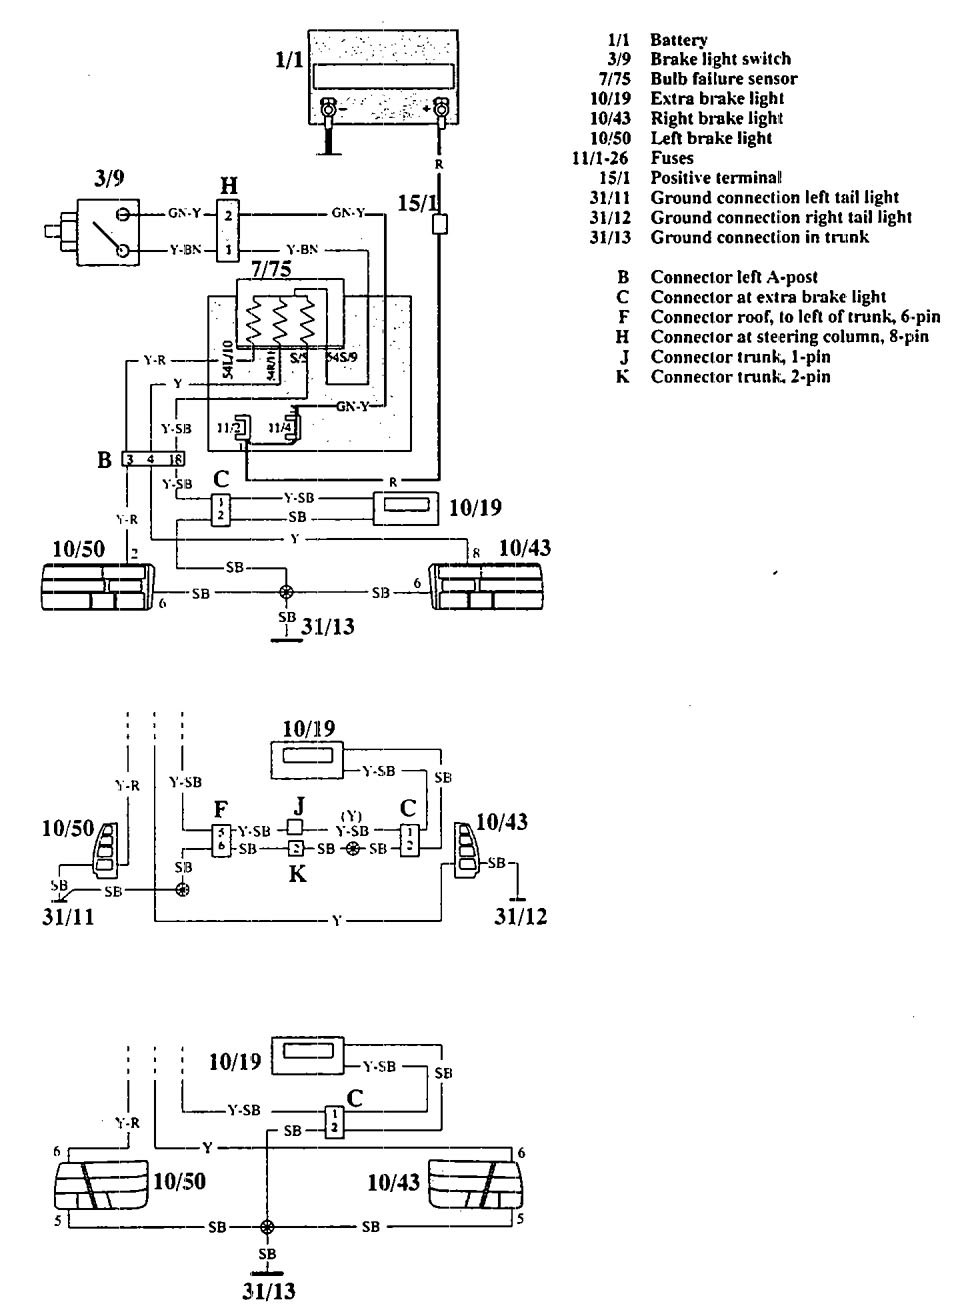 wiring diagram volvo 740 radio wiring diagram volvo 850 radio wiring colors 2005 volvo s40 stereo wiring harness